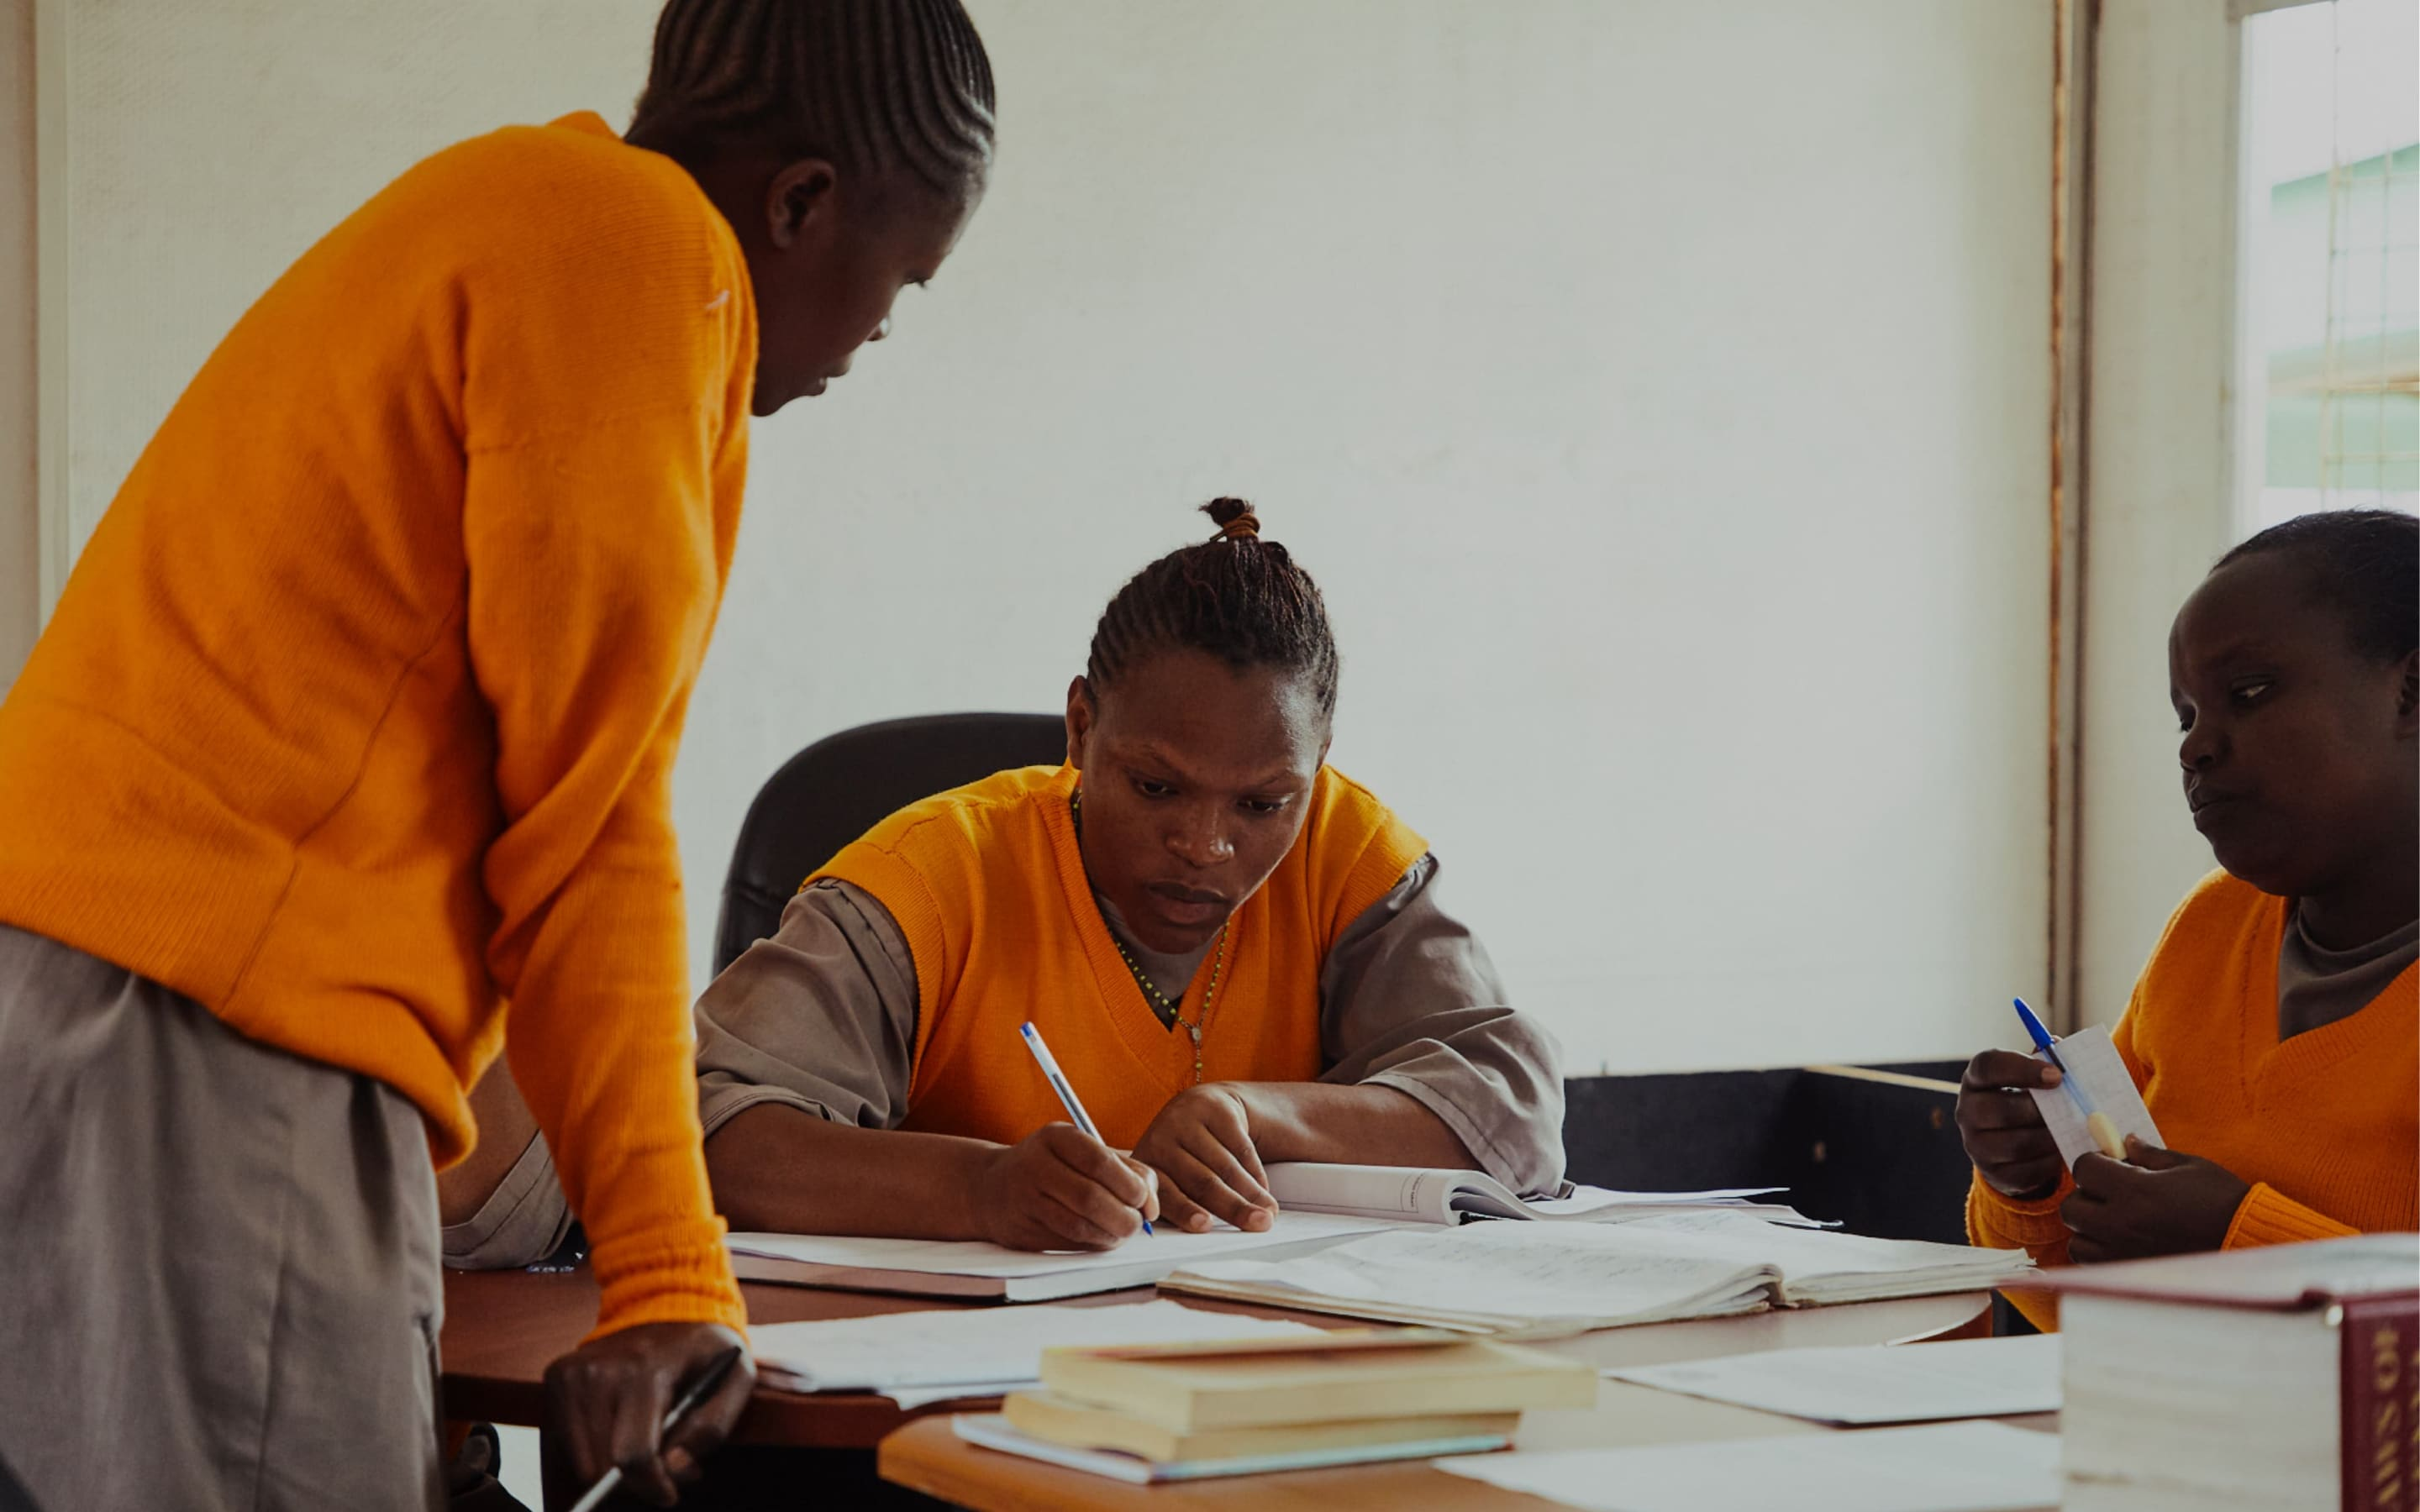 Justice Defenders participants study in a library.